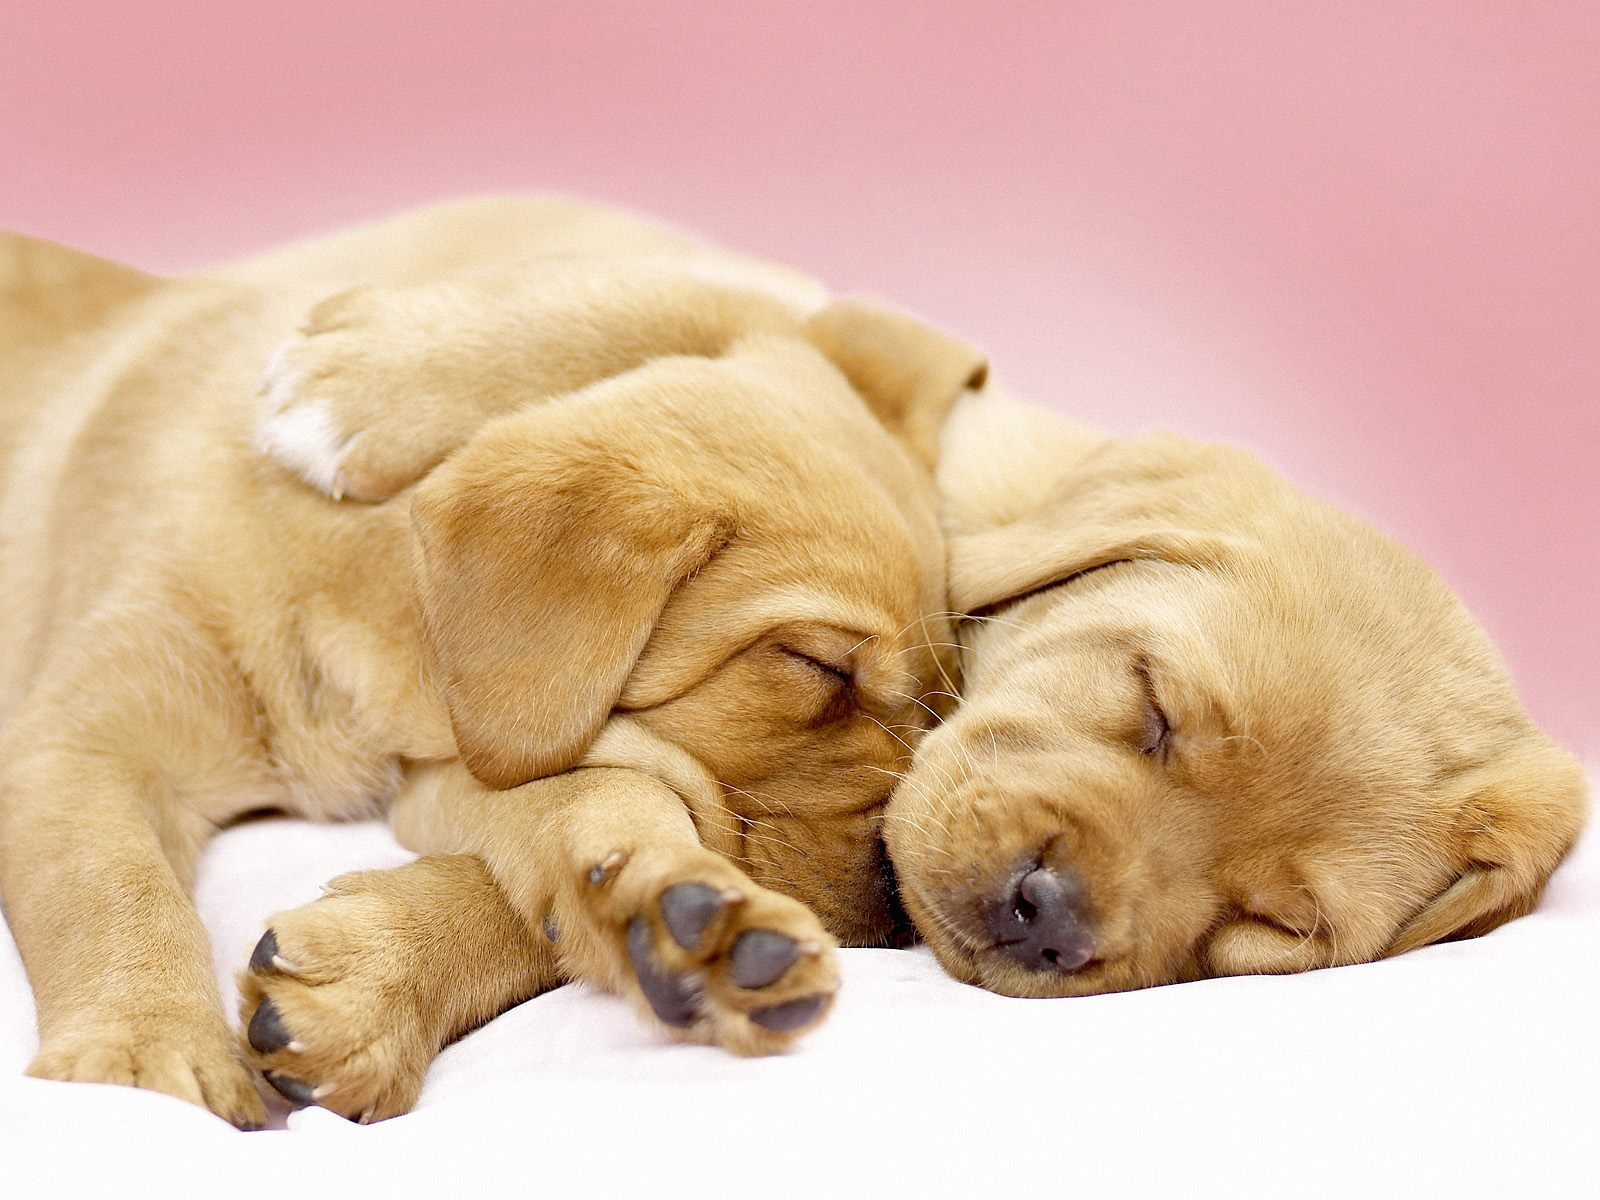 Sleep Together Dog Wallpapers Backgrounds | Dogs Wallpapers Backgrounds